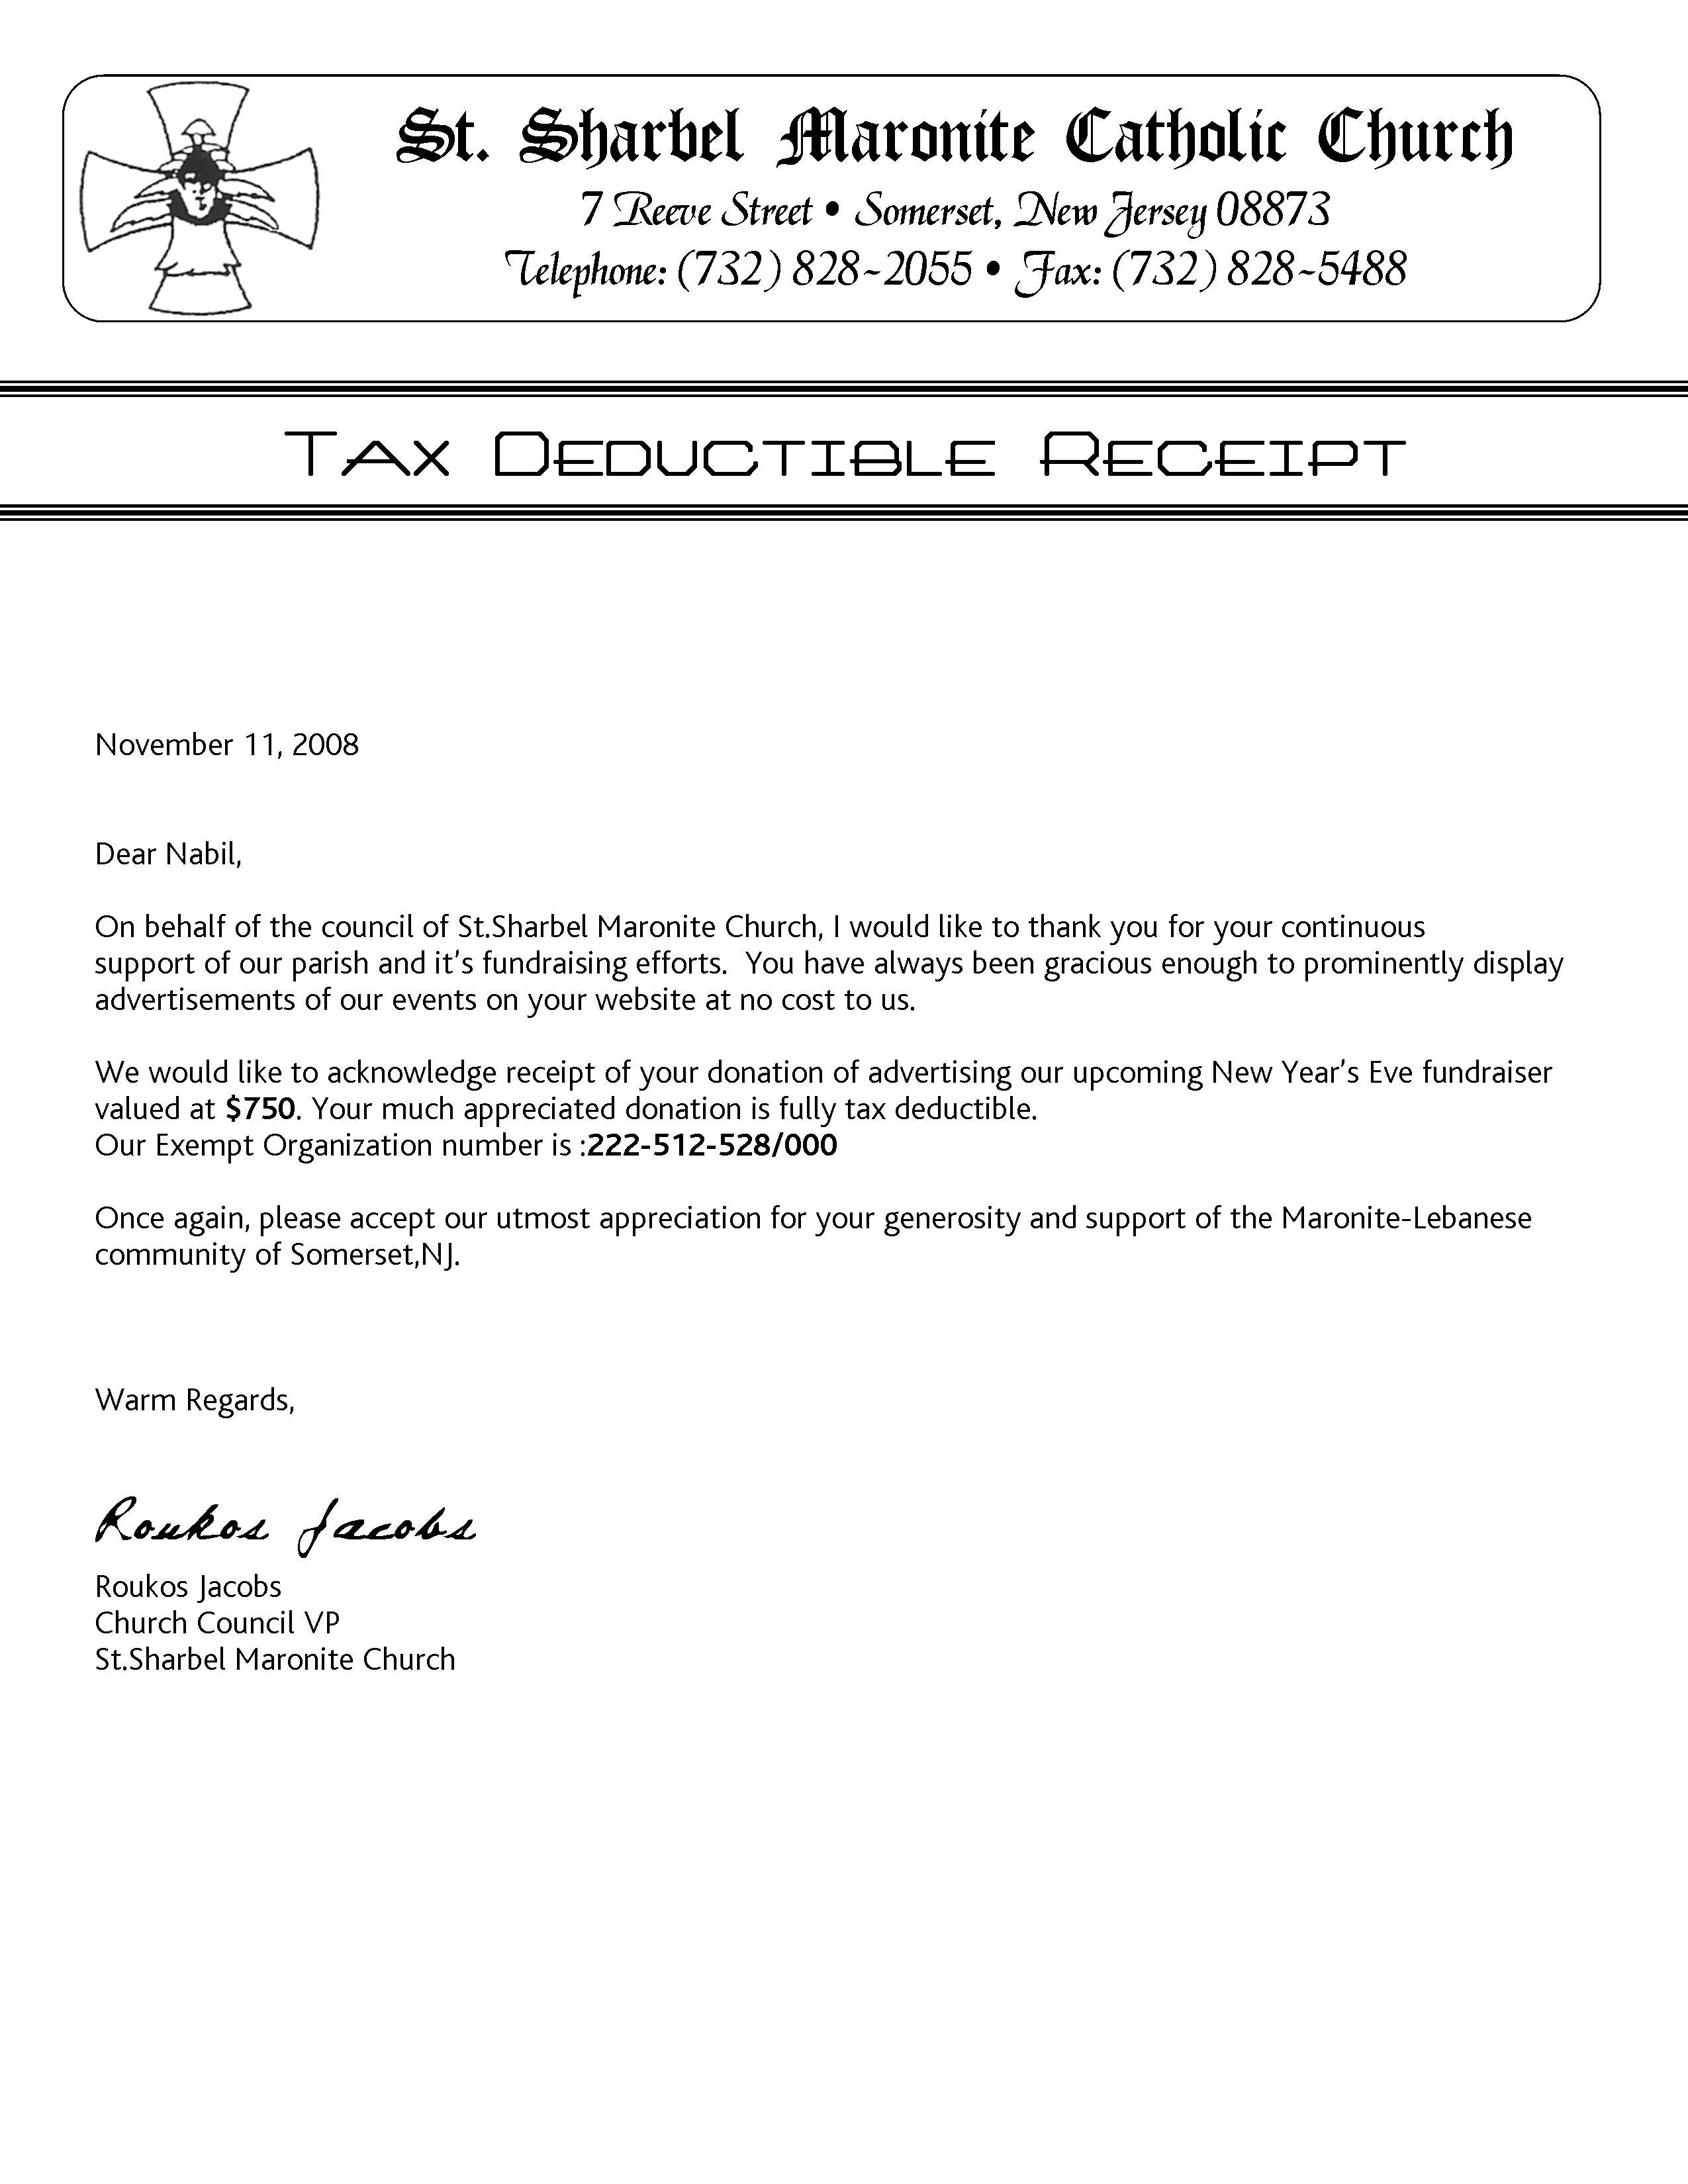 Charitable Contribution Letter Template